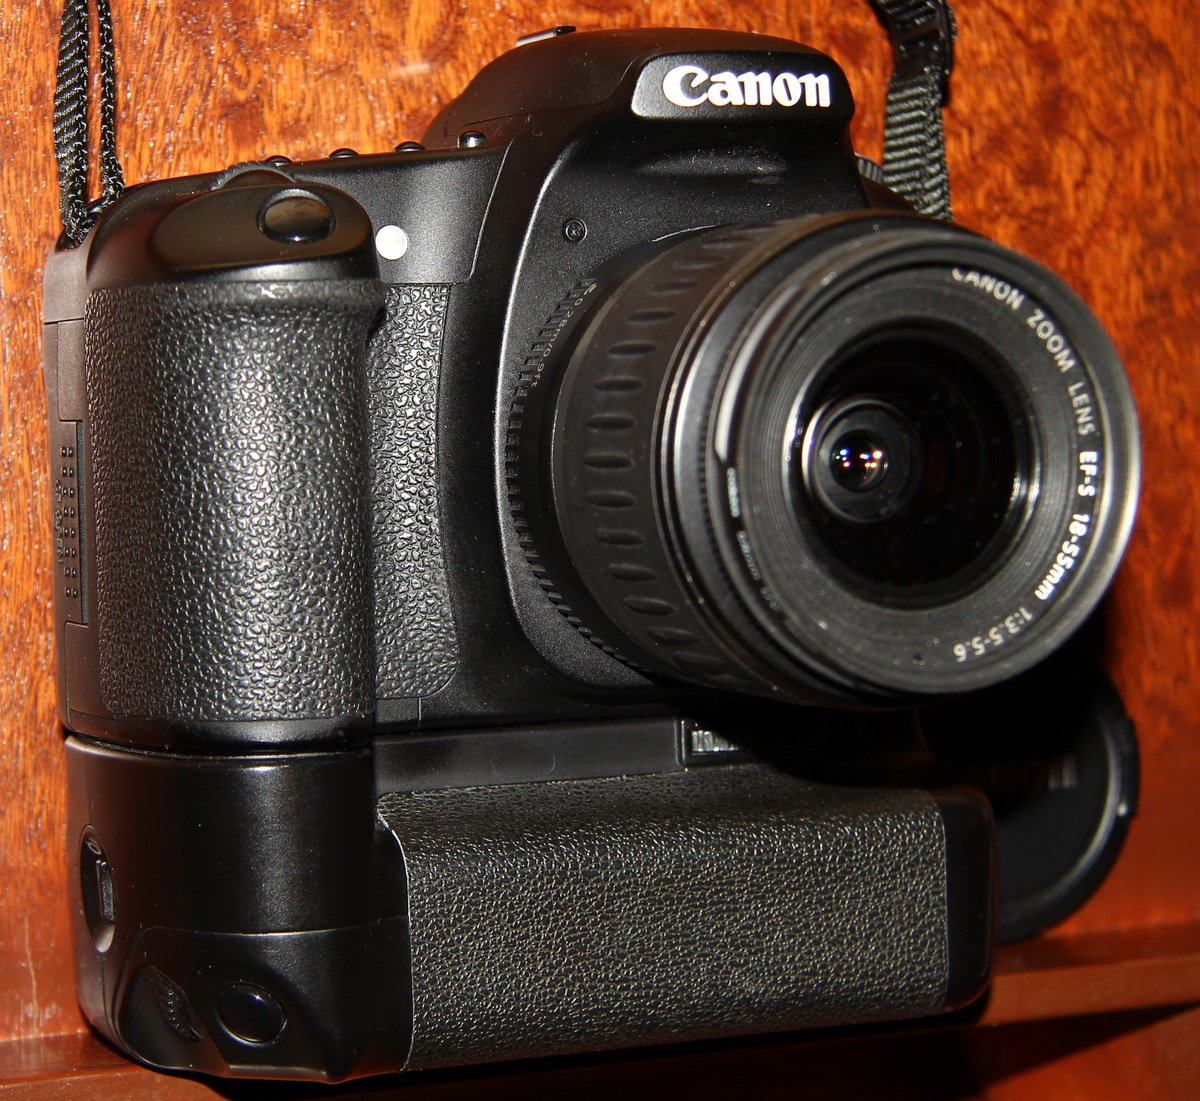 Amazon.com : D3) CANON EOS 30D BODY : Slr Digital Cameras : Camera & Photo